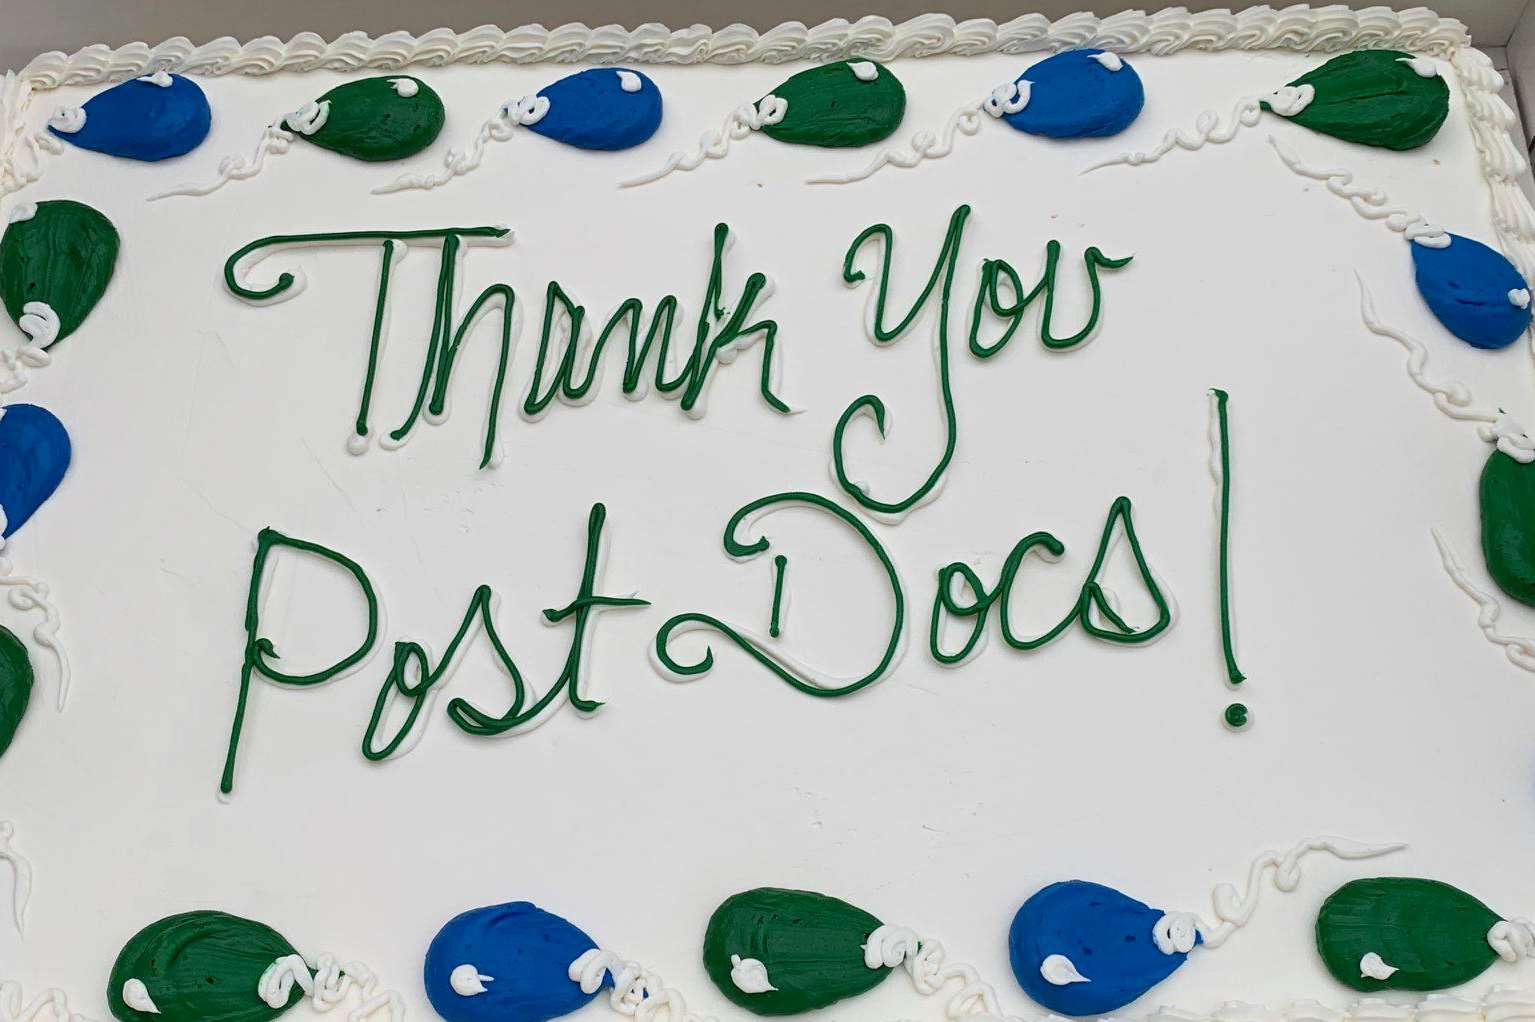 Thank you MCW postdocs